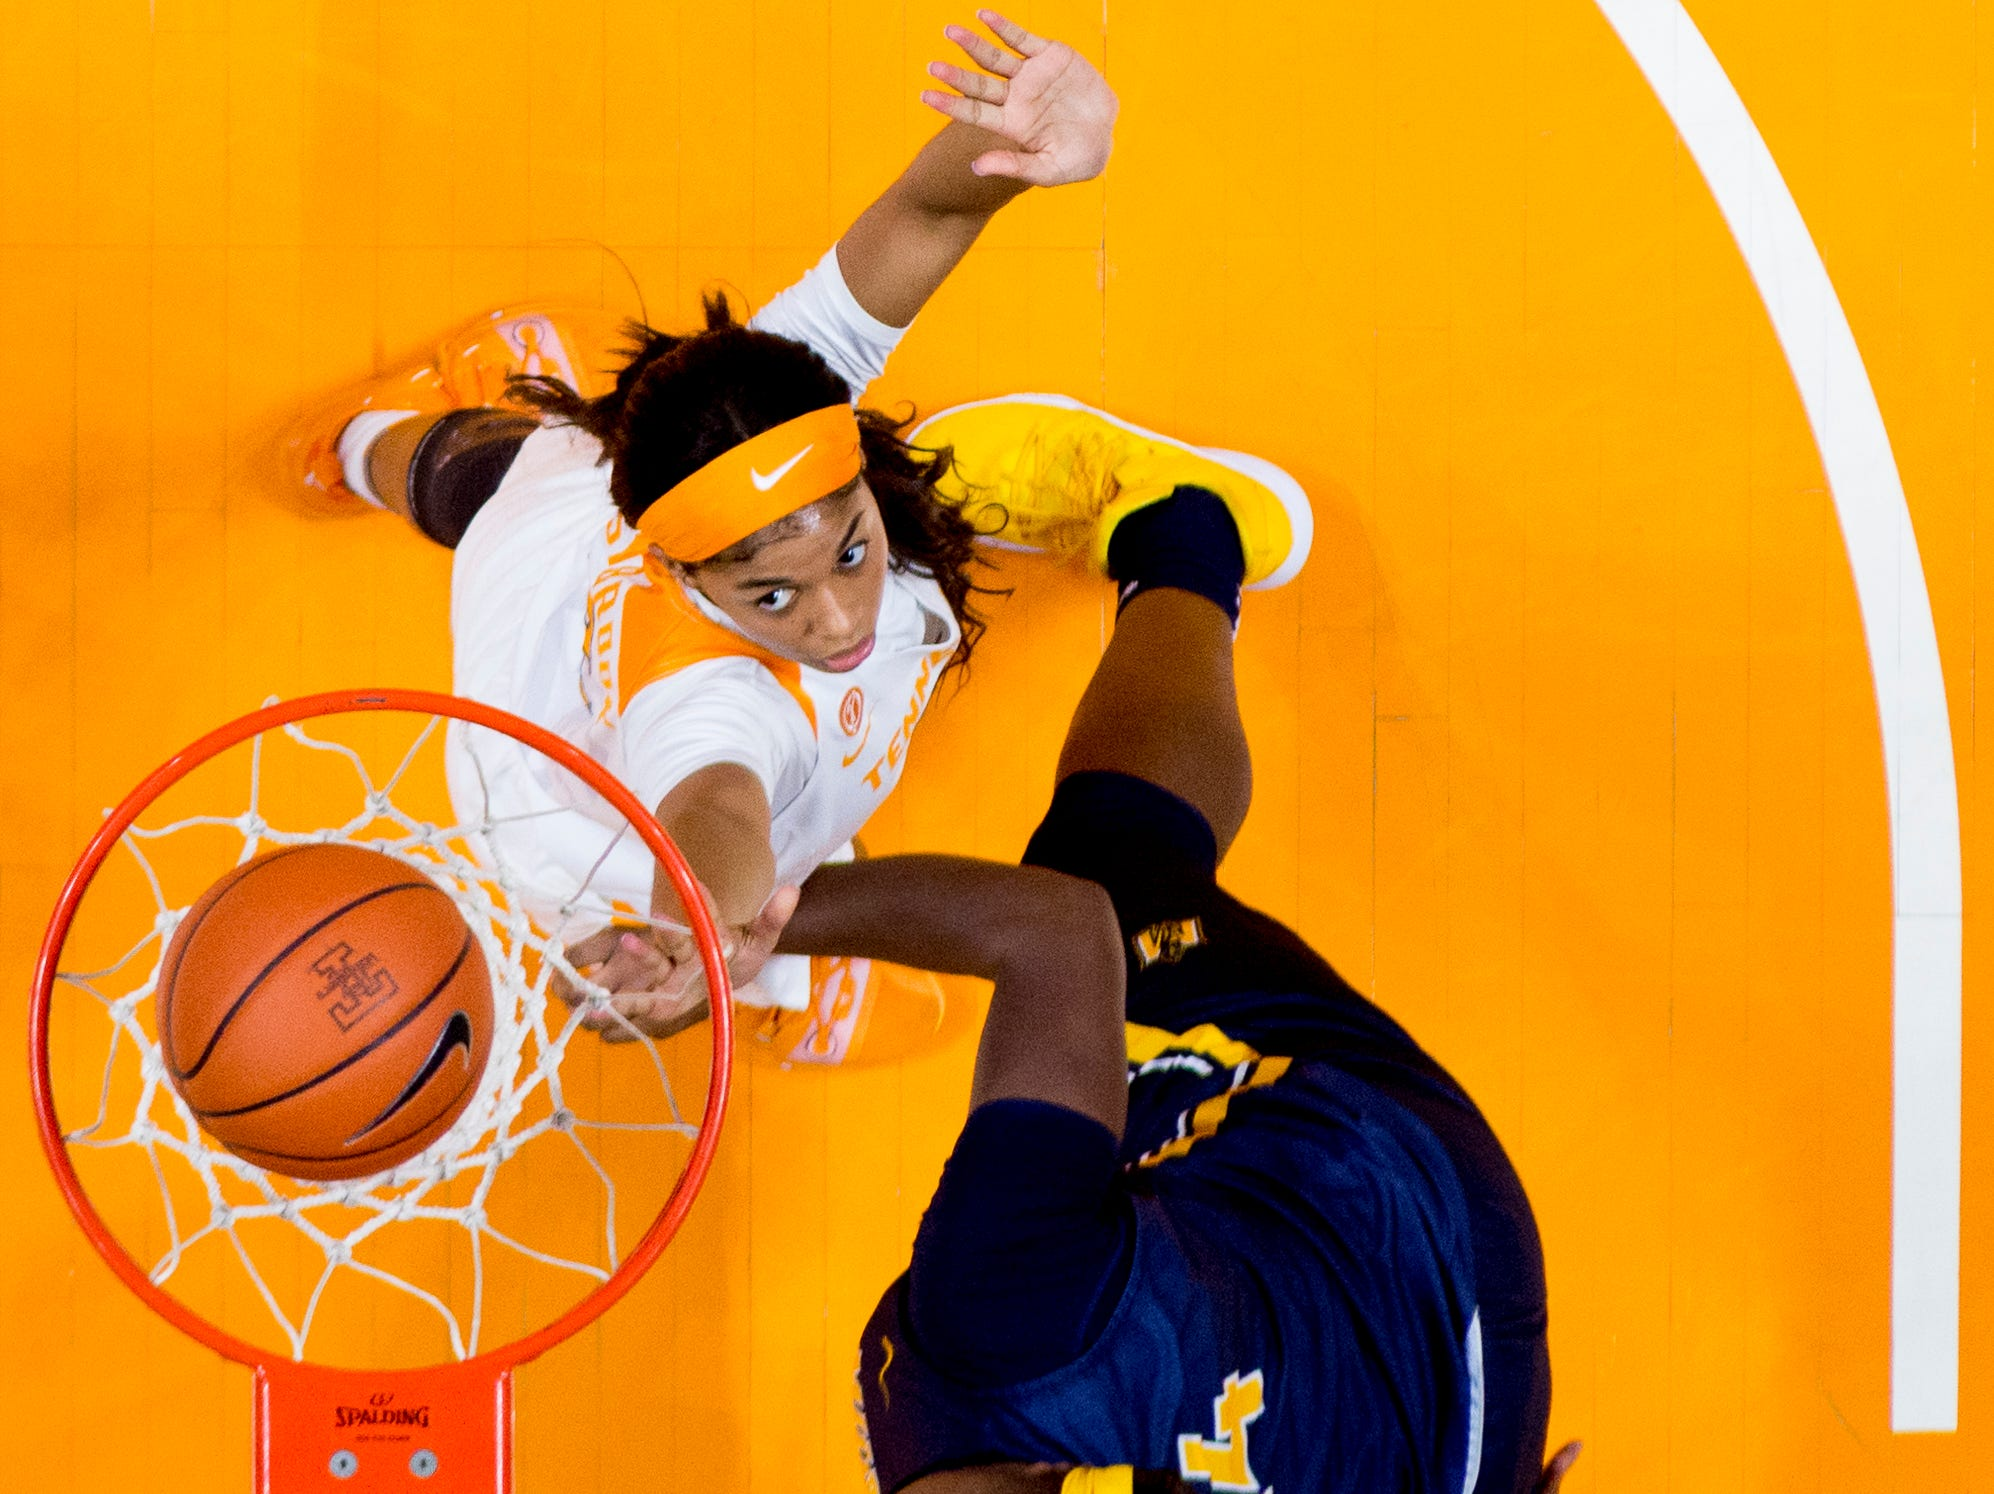 Tennessee guard Evina Westbrook (2) eyes the ball as it falls in the net during a game between the Tennessee Lady Vols and Murray State at Thompson-Boling Arena in Knoxville, Tennessee on Friday, December 28, 2018.